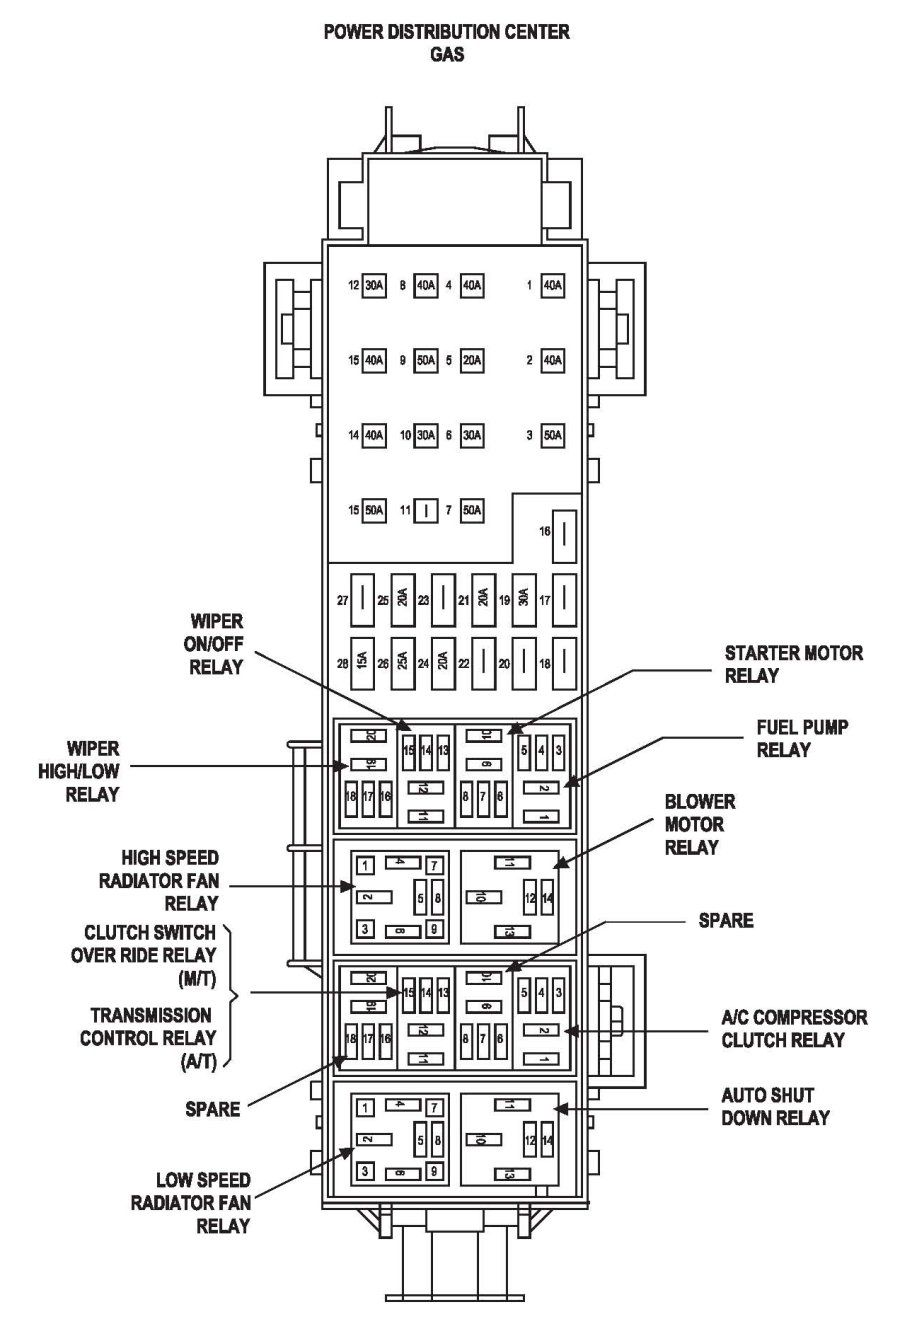 jeep liberty fuse box diagram image details jeep liberty jeepjeep liberty fuse box diagram image details